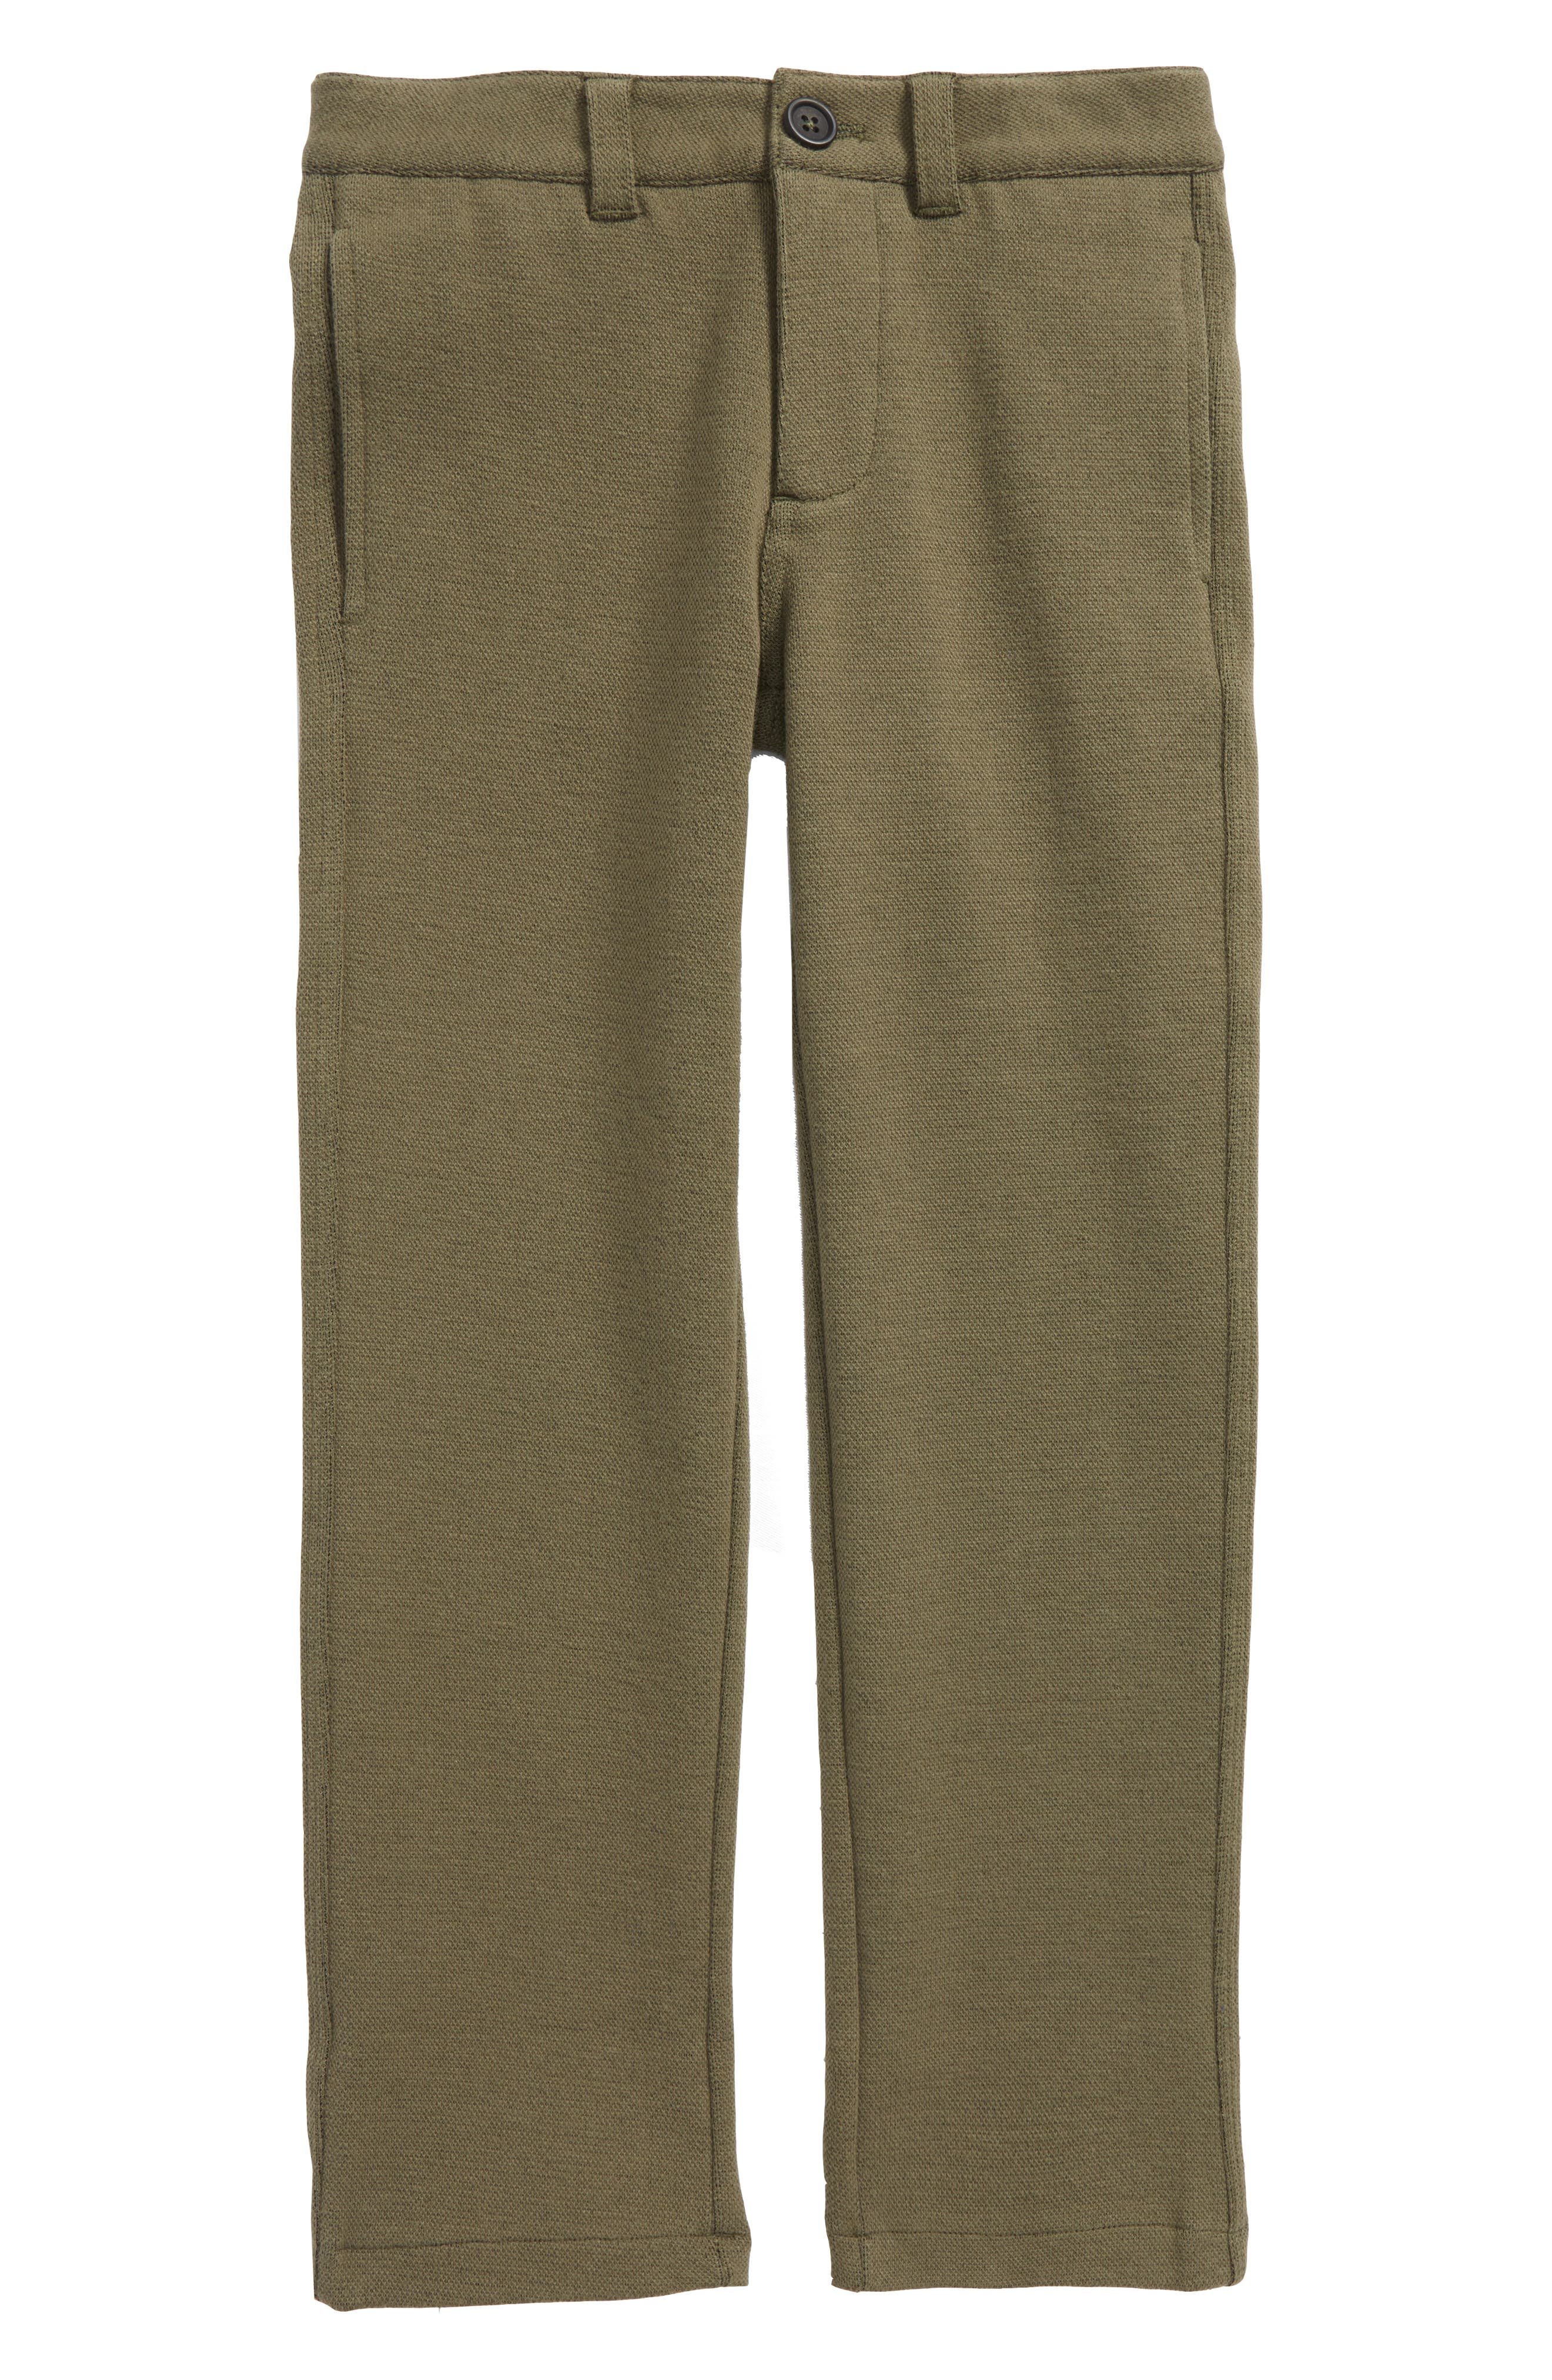 Mini Boden Jersey Chino Pants (Toddler Boys, Little Boys & Big Boys)